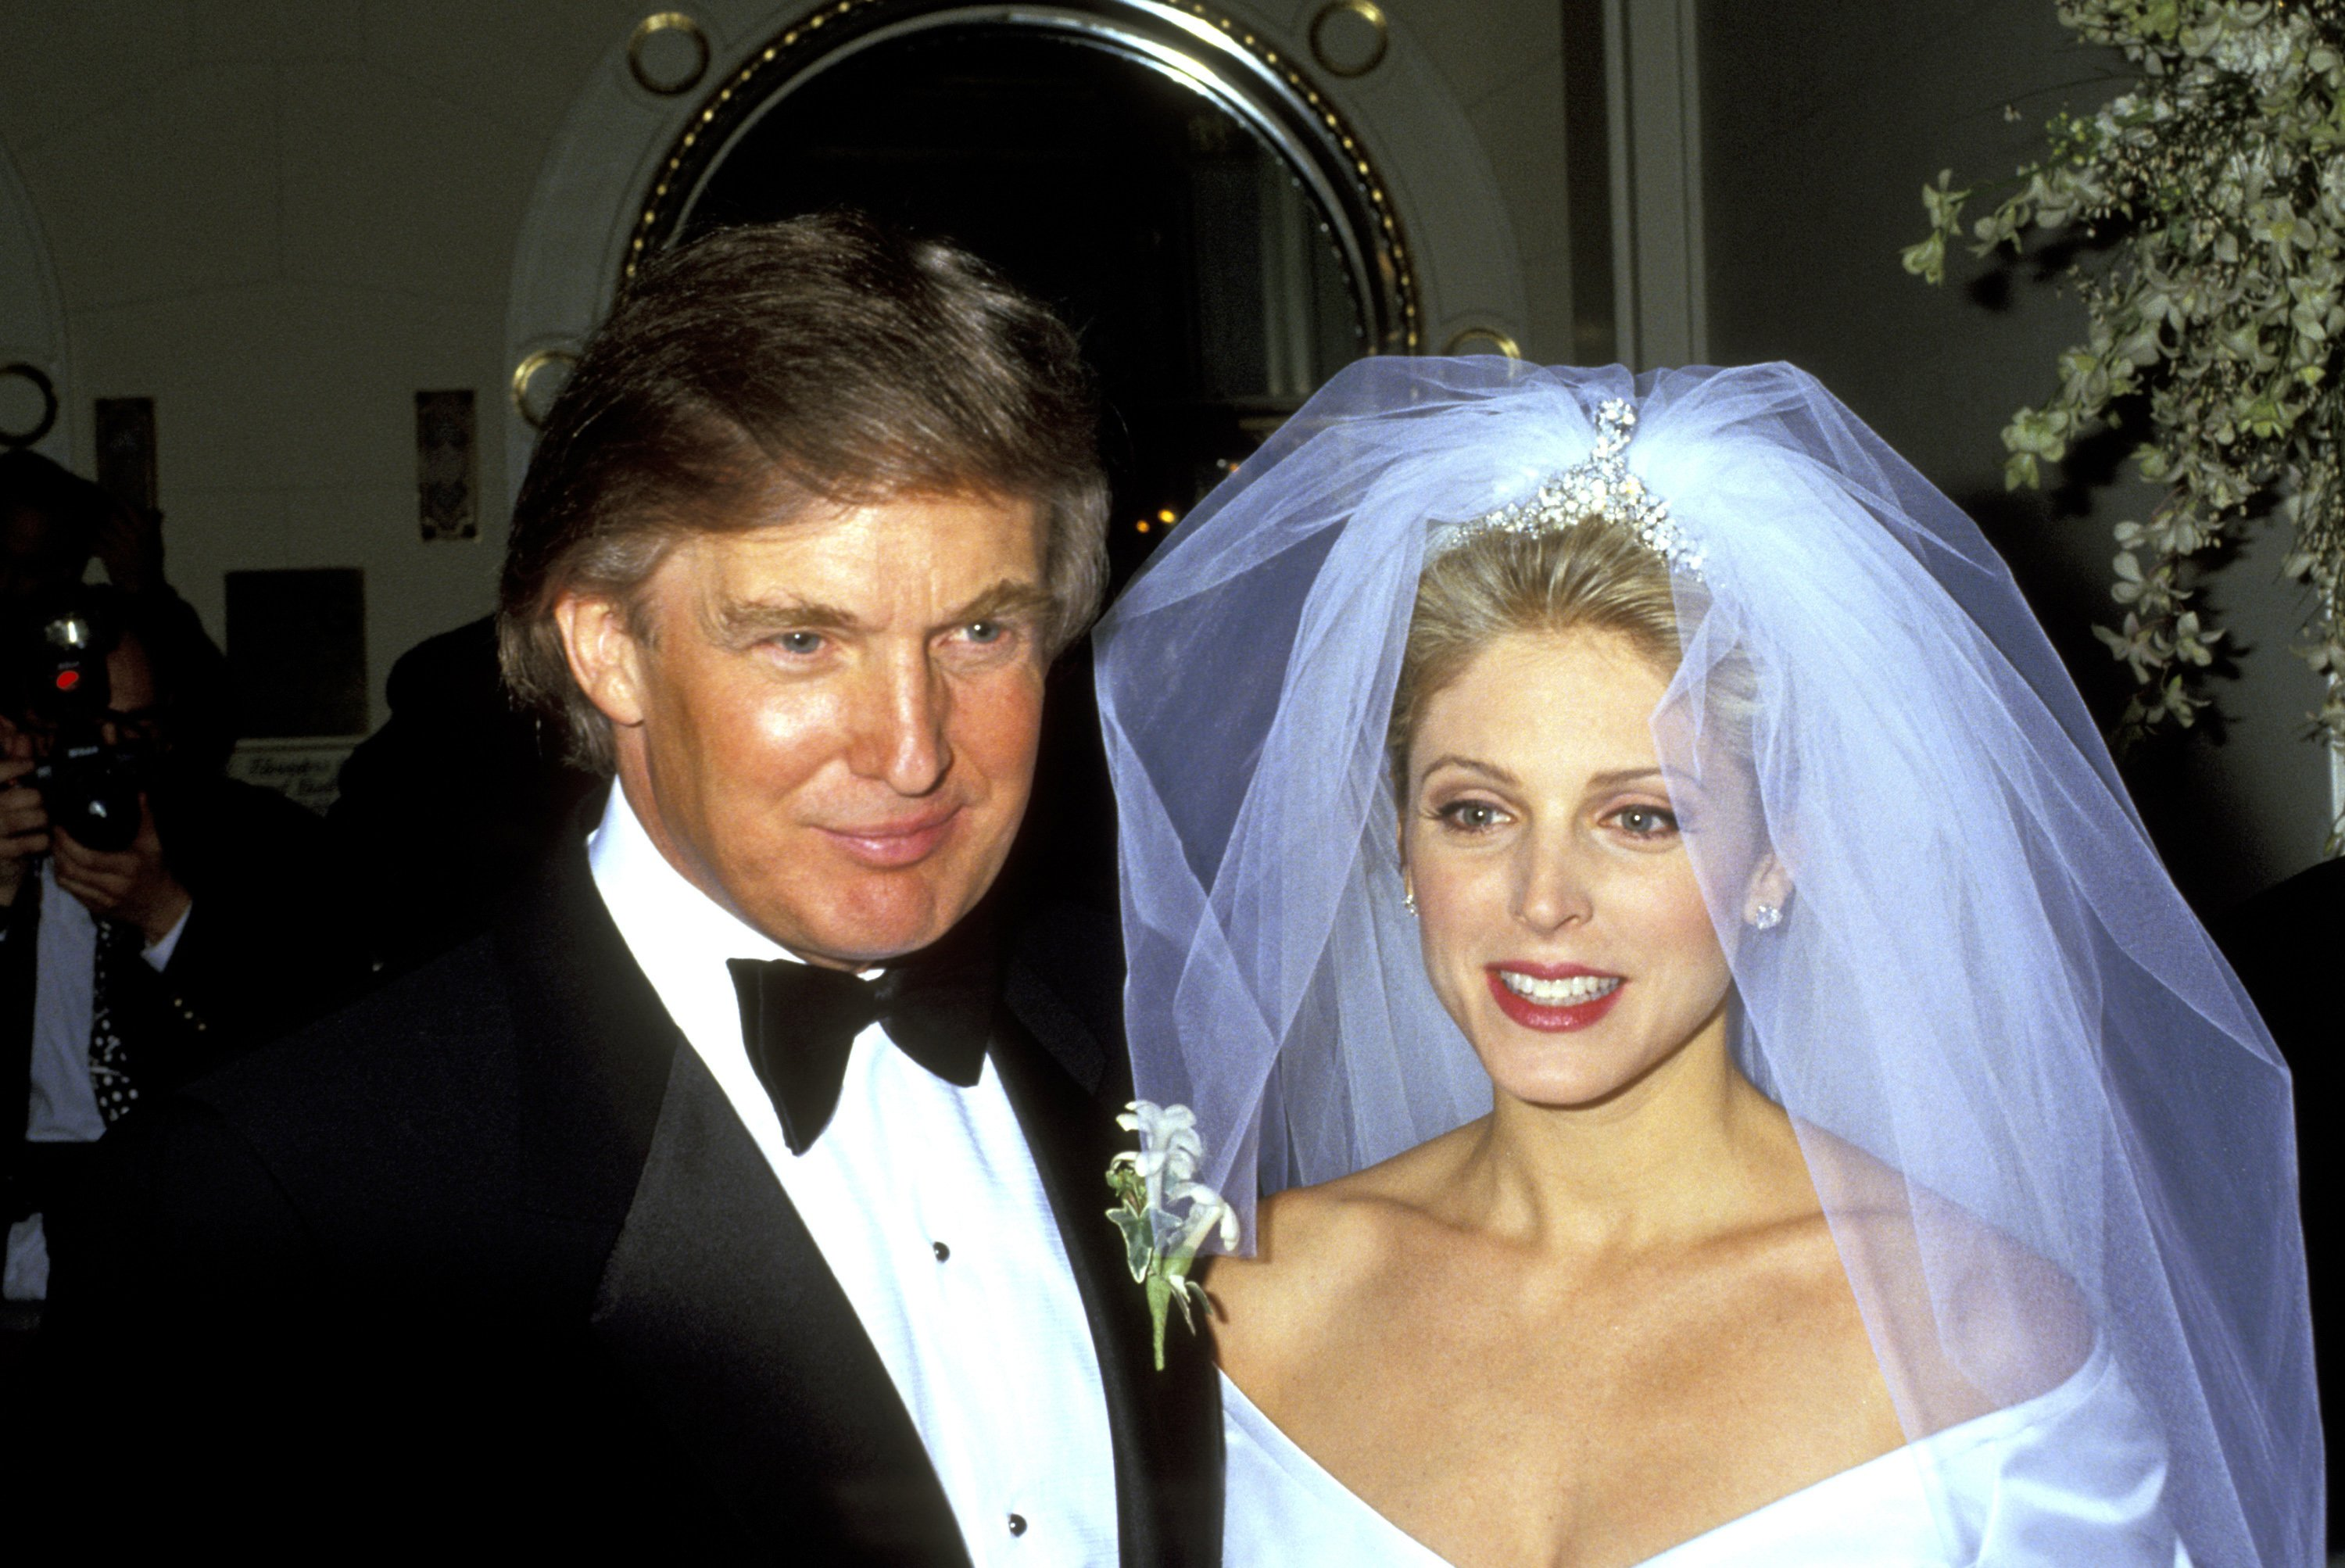 Donald Trumps und Marla Maples Hochzeit, 1993 | Quelle: Getty Images